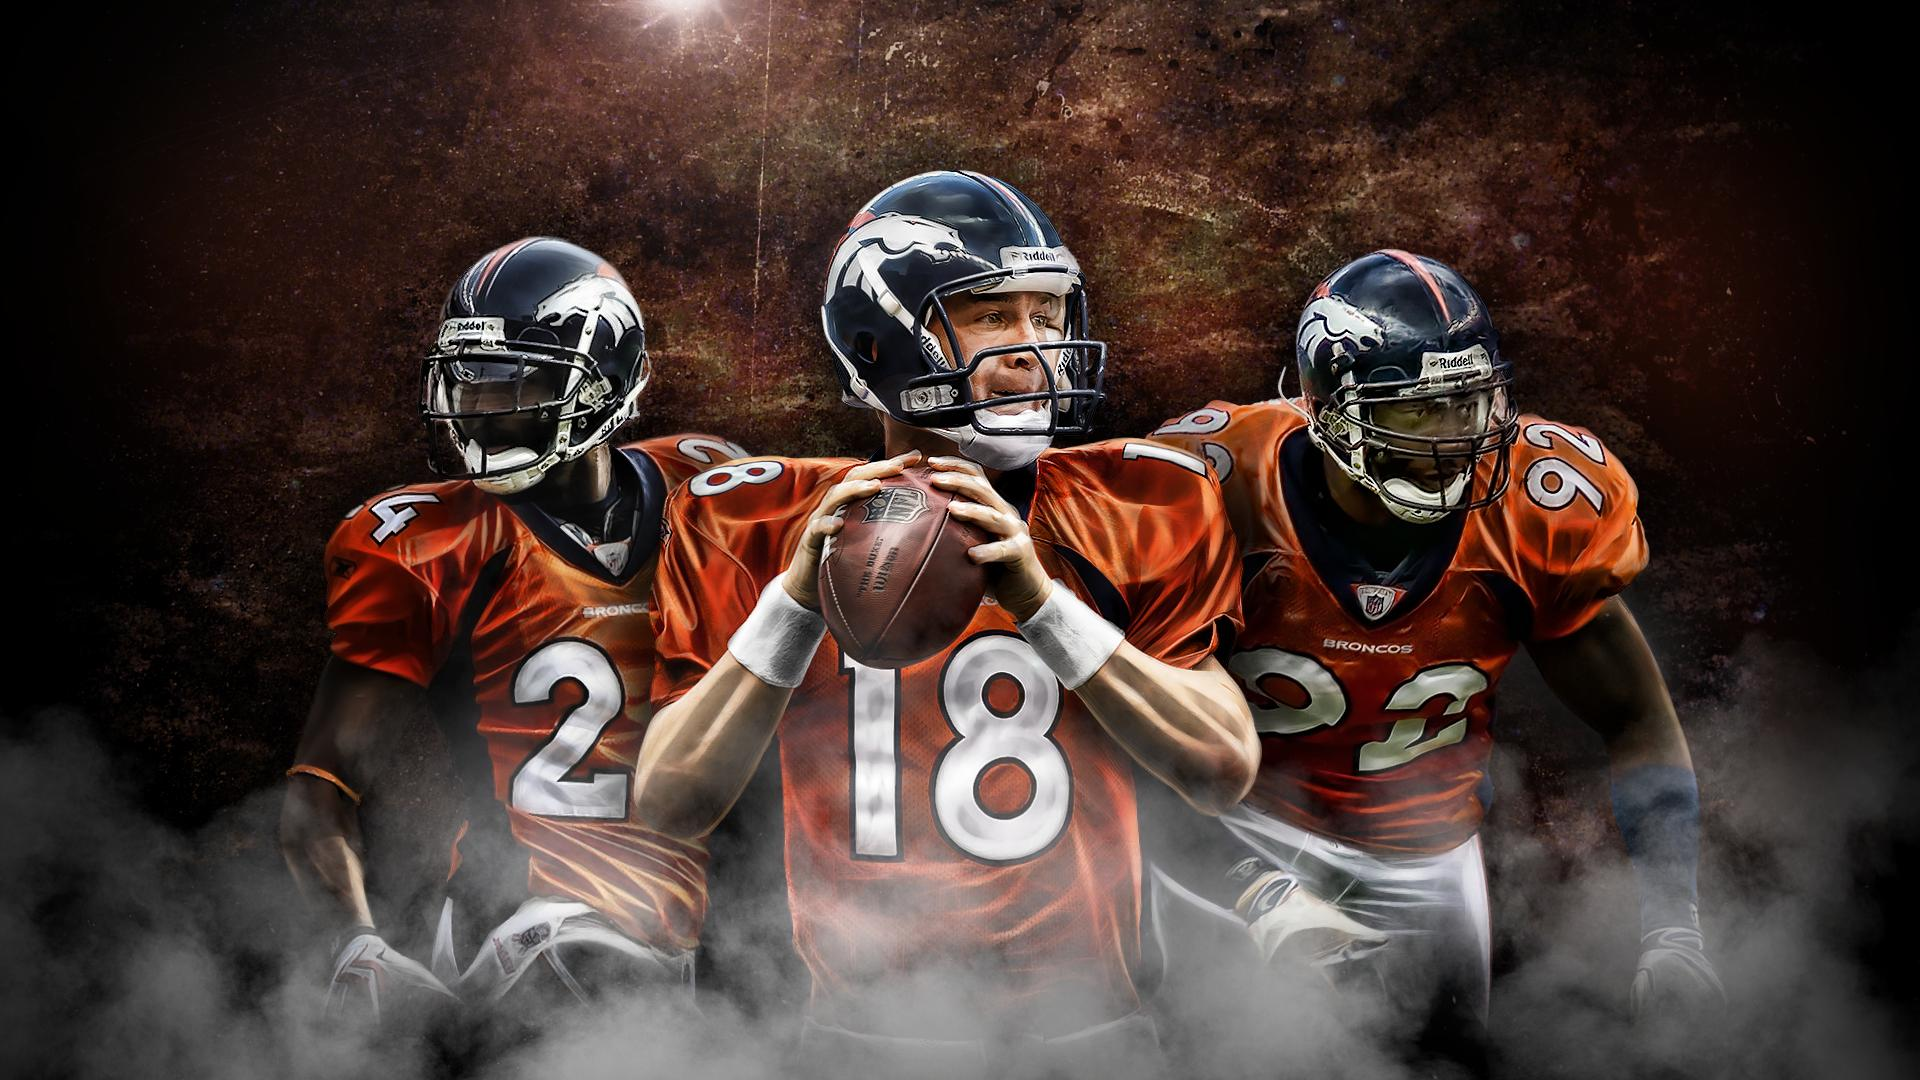 Peyton manning wallpapers wallpaper cave peyton manning widescreen 18936 wallpaper risewall voltagebd Images